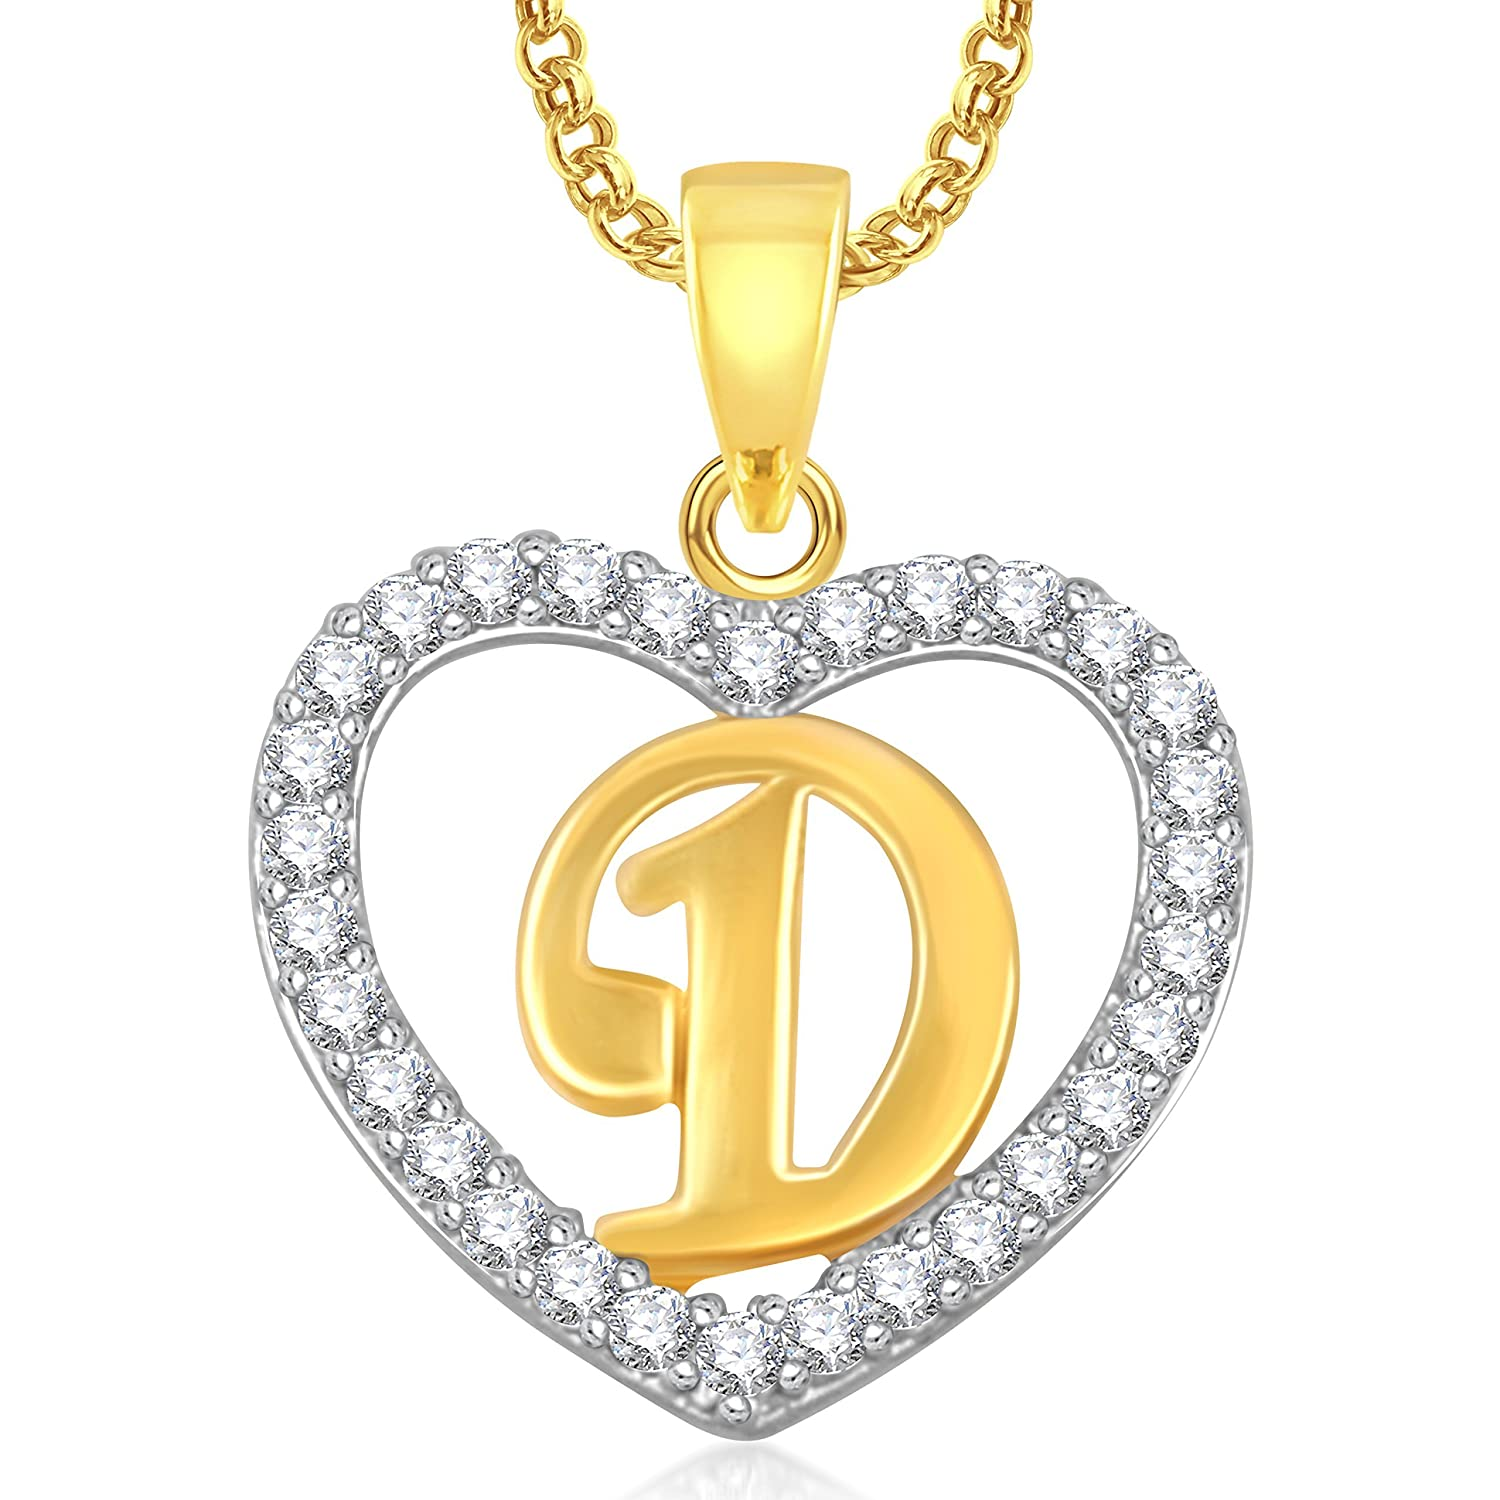 heart letter cz and store meenaz buy with online at for prices locket jewellery in diamond gold india men chain plated dp alphabet american lockets pendant women j low amazon